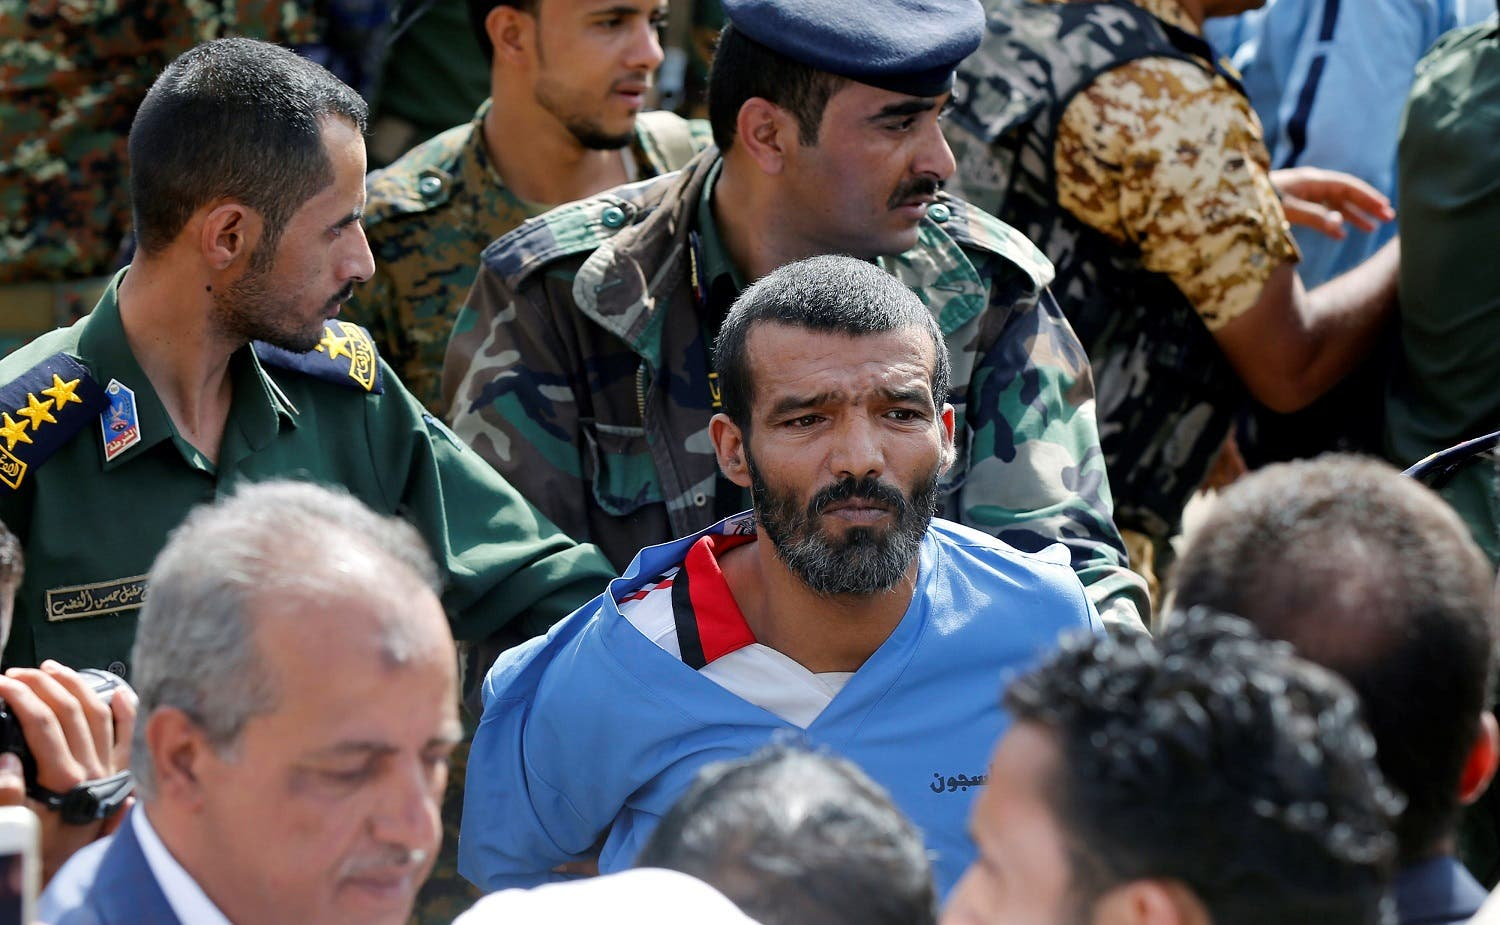 Police officers escort Muhammad al-Maghrabi to the execution site, in Sanaa. (Reuters)